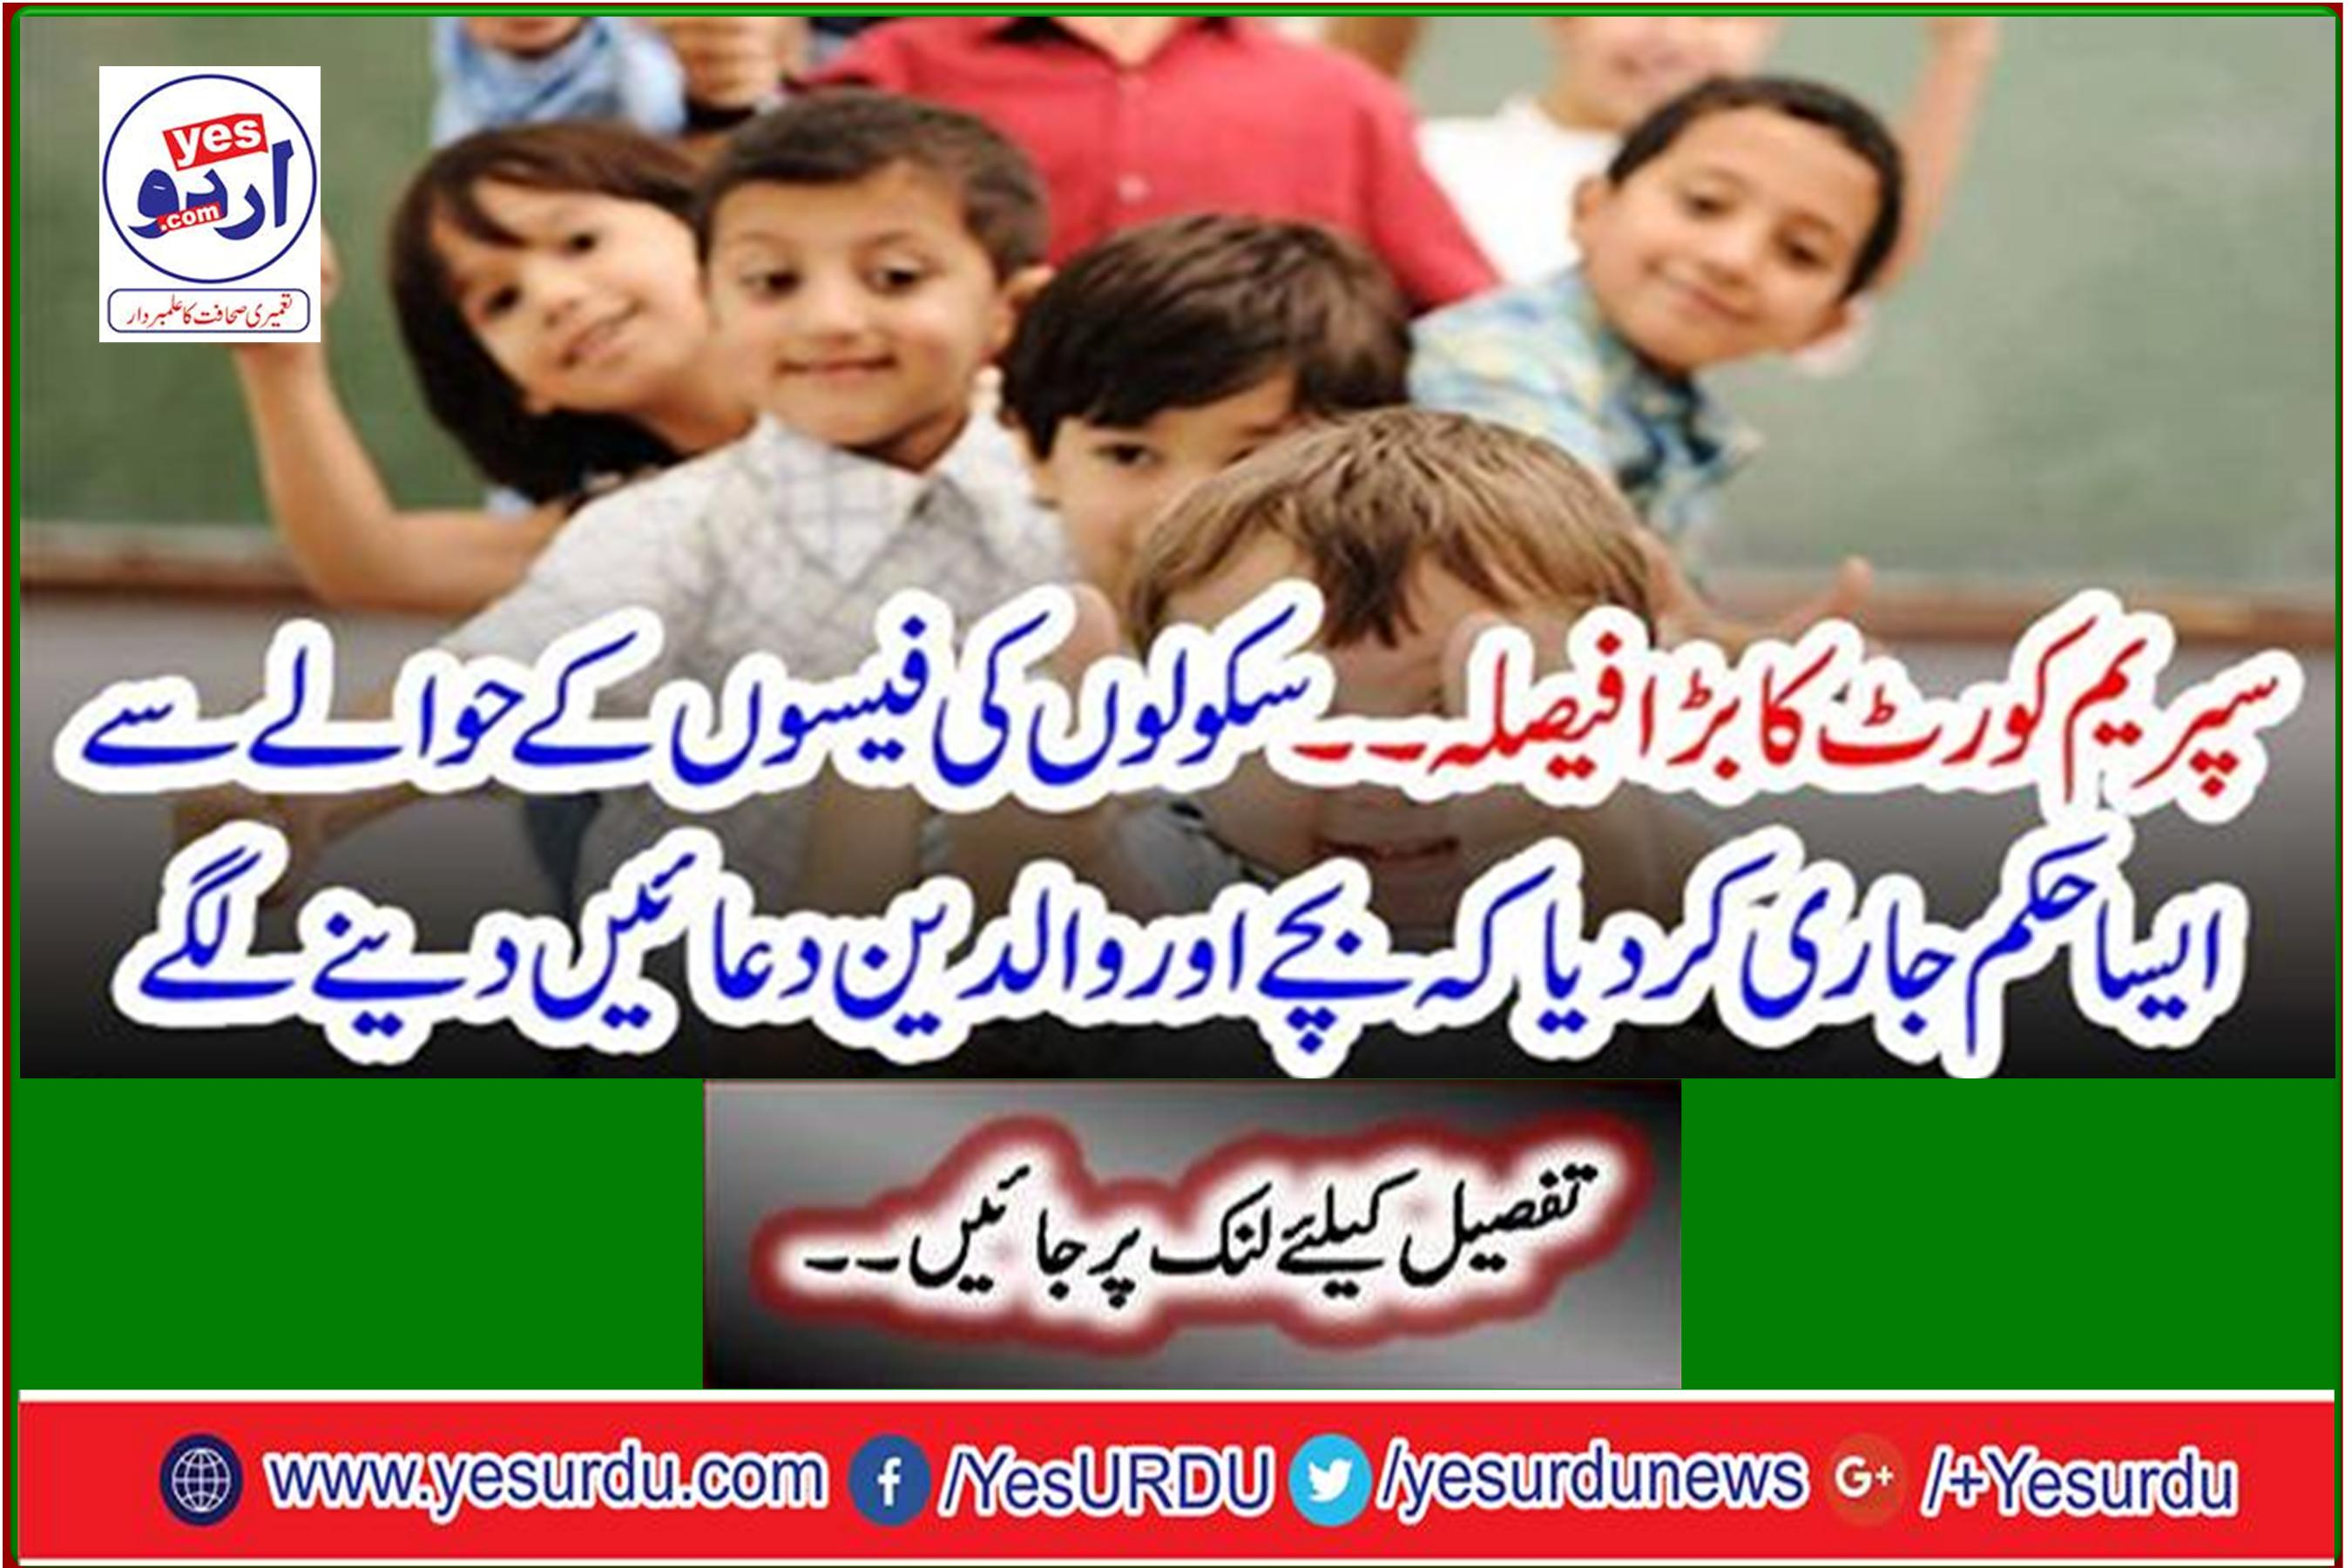 Supreme Court decision - With regards to school fees, an order was issued that parents start praying